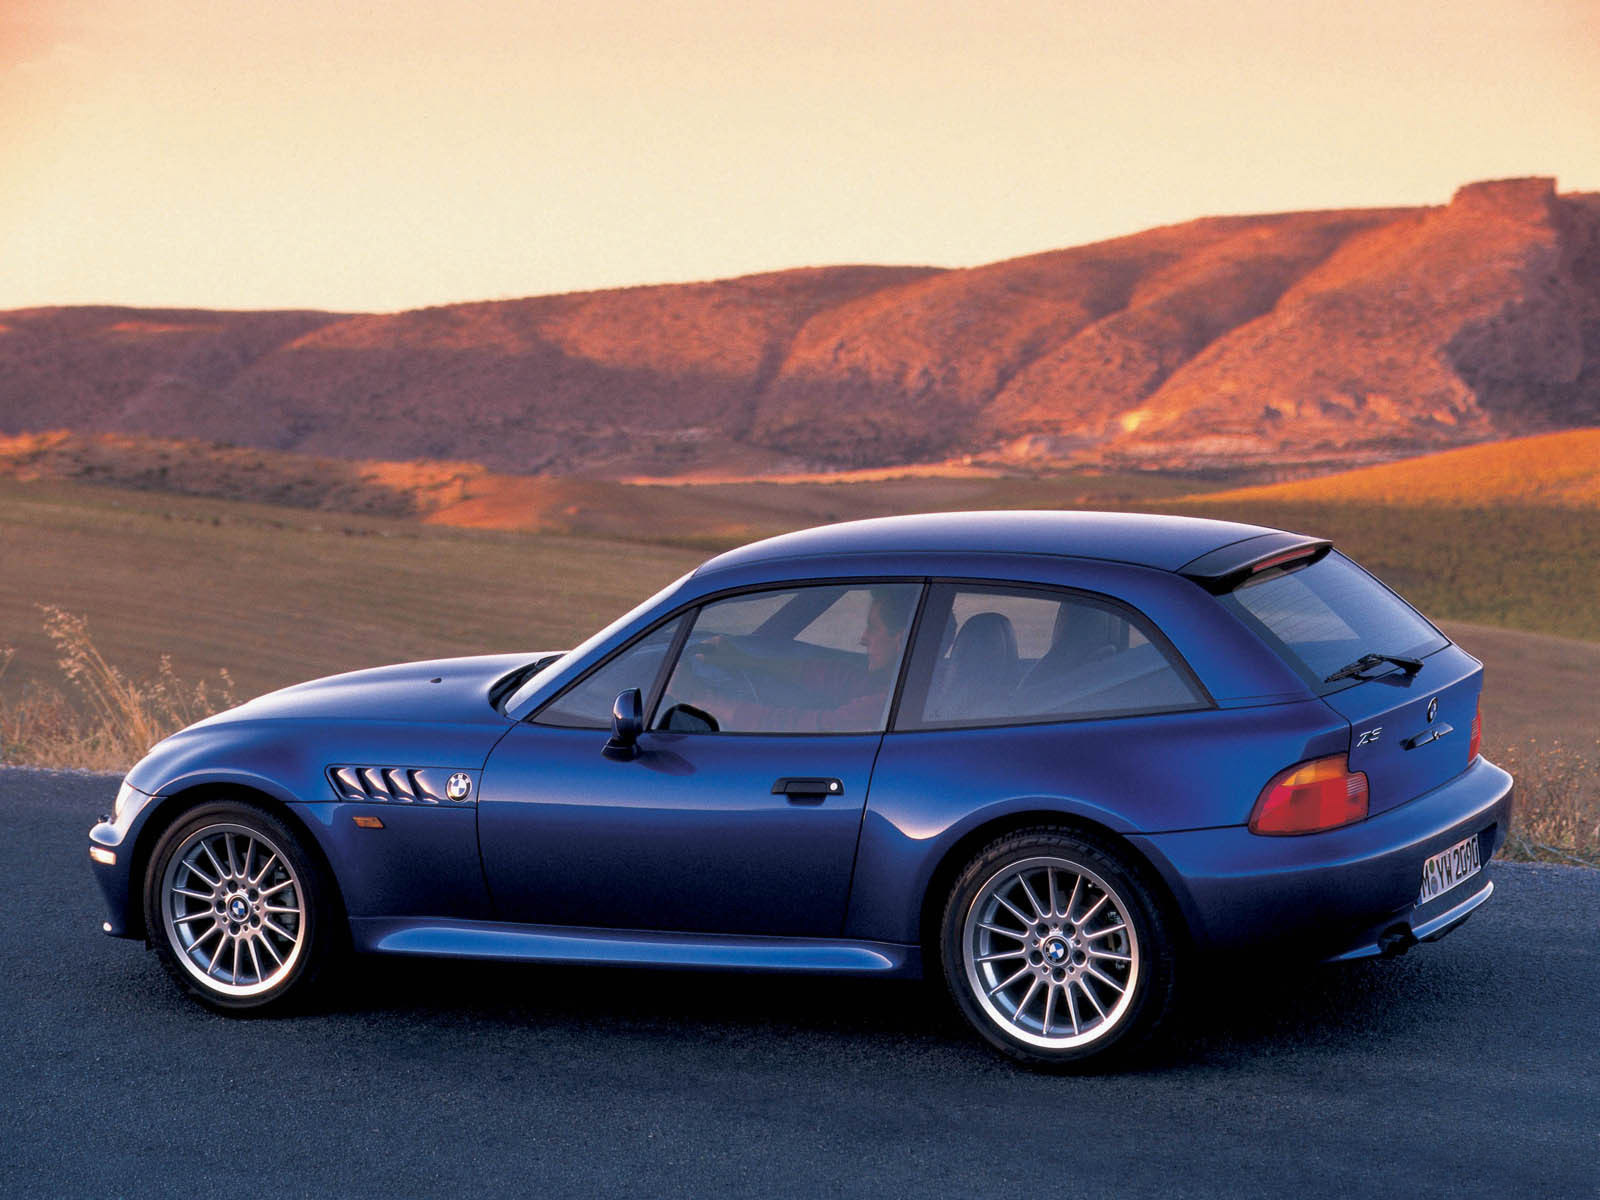 bmw z3 coupe 1998 images #2